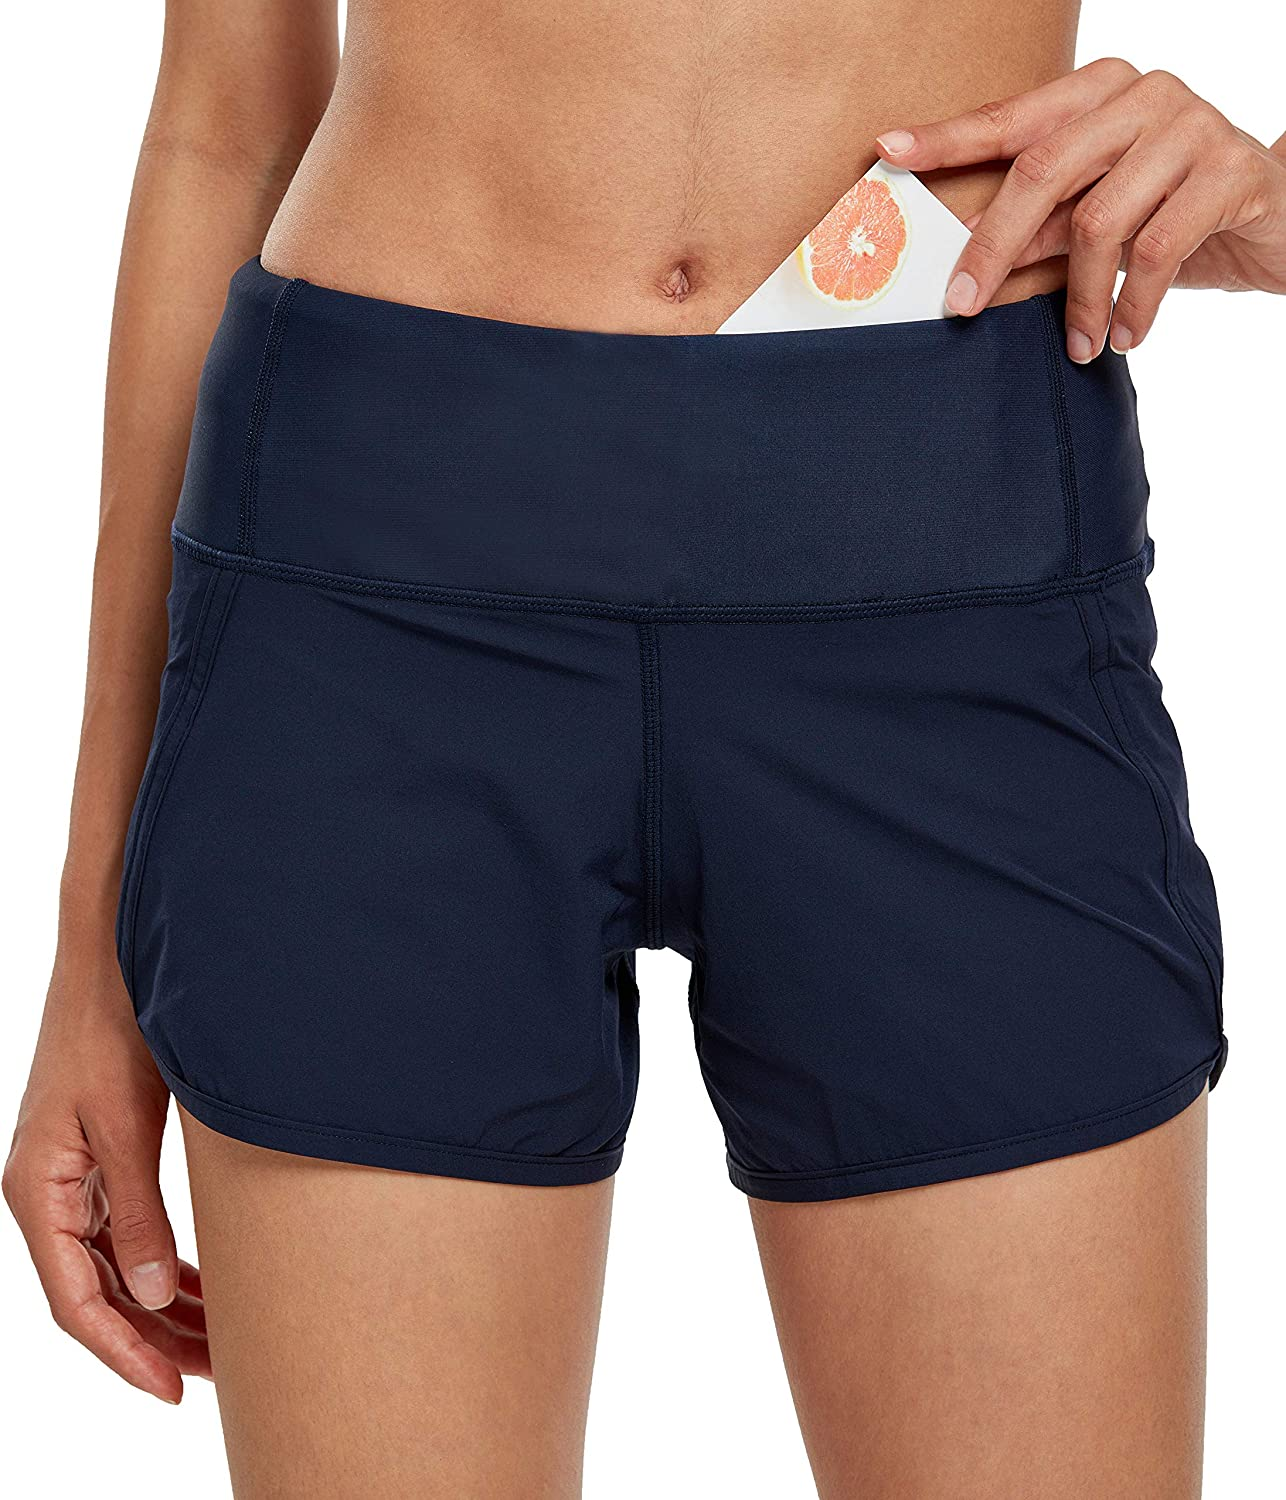 Womens Workout Shorts Athletic Sports Running Shorts for Women with Mesh Liner /& Pocket on Waistband